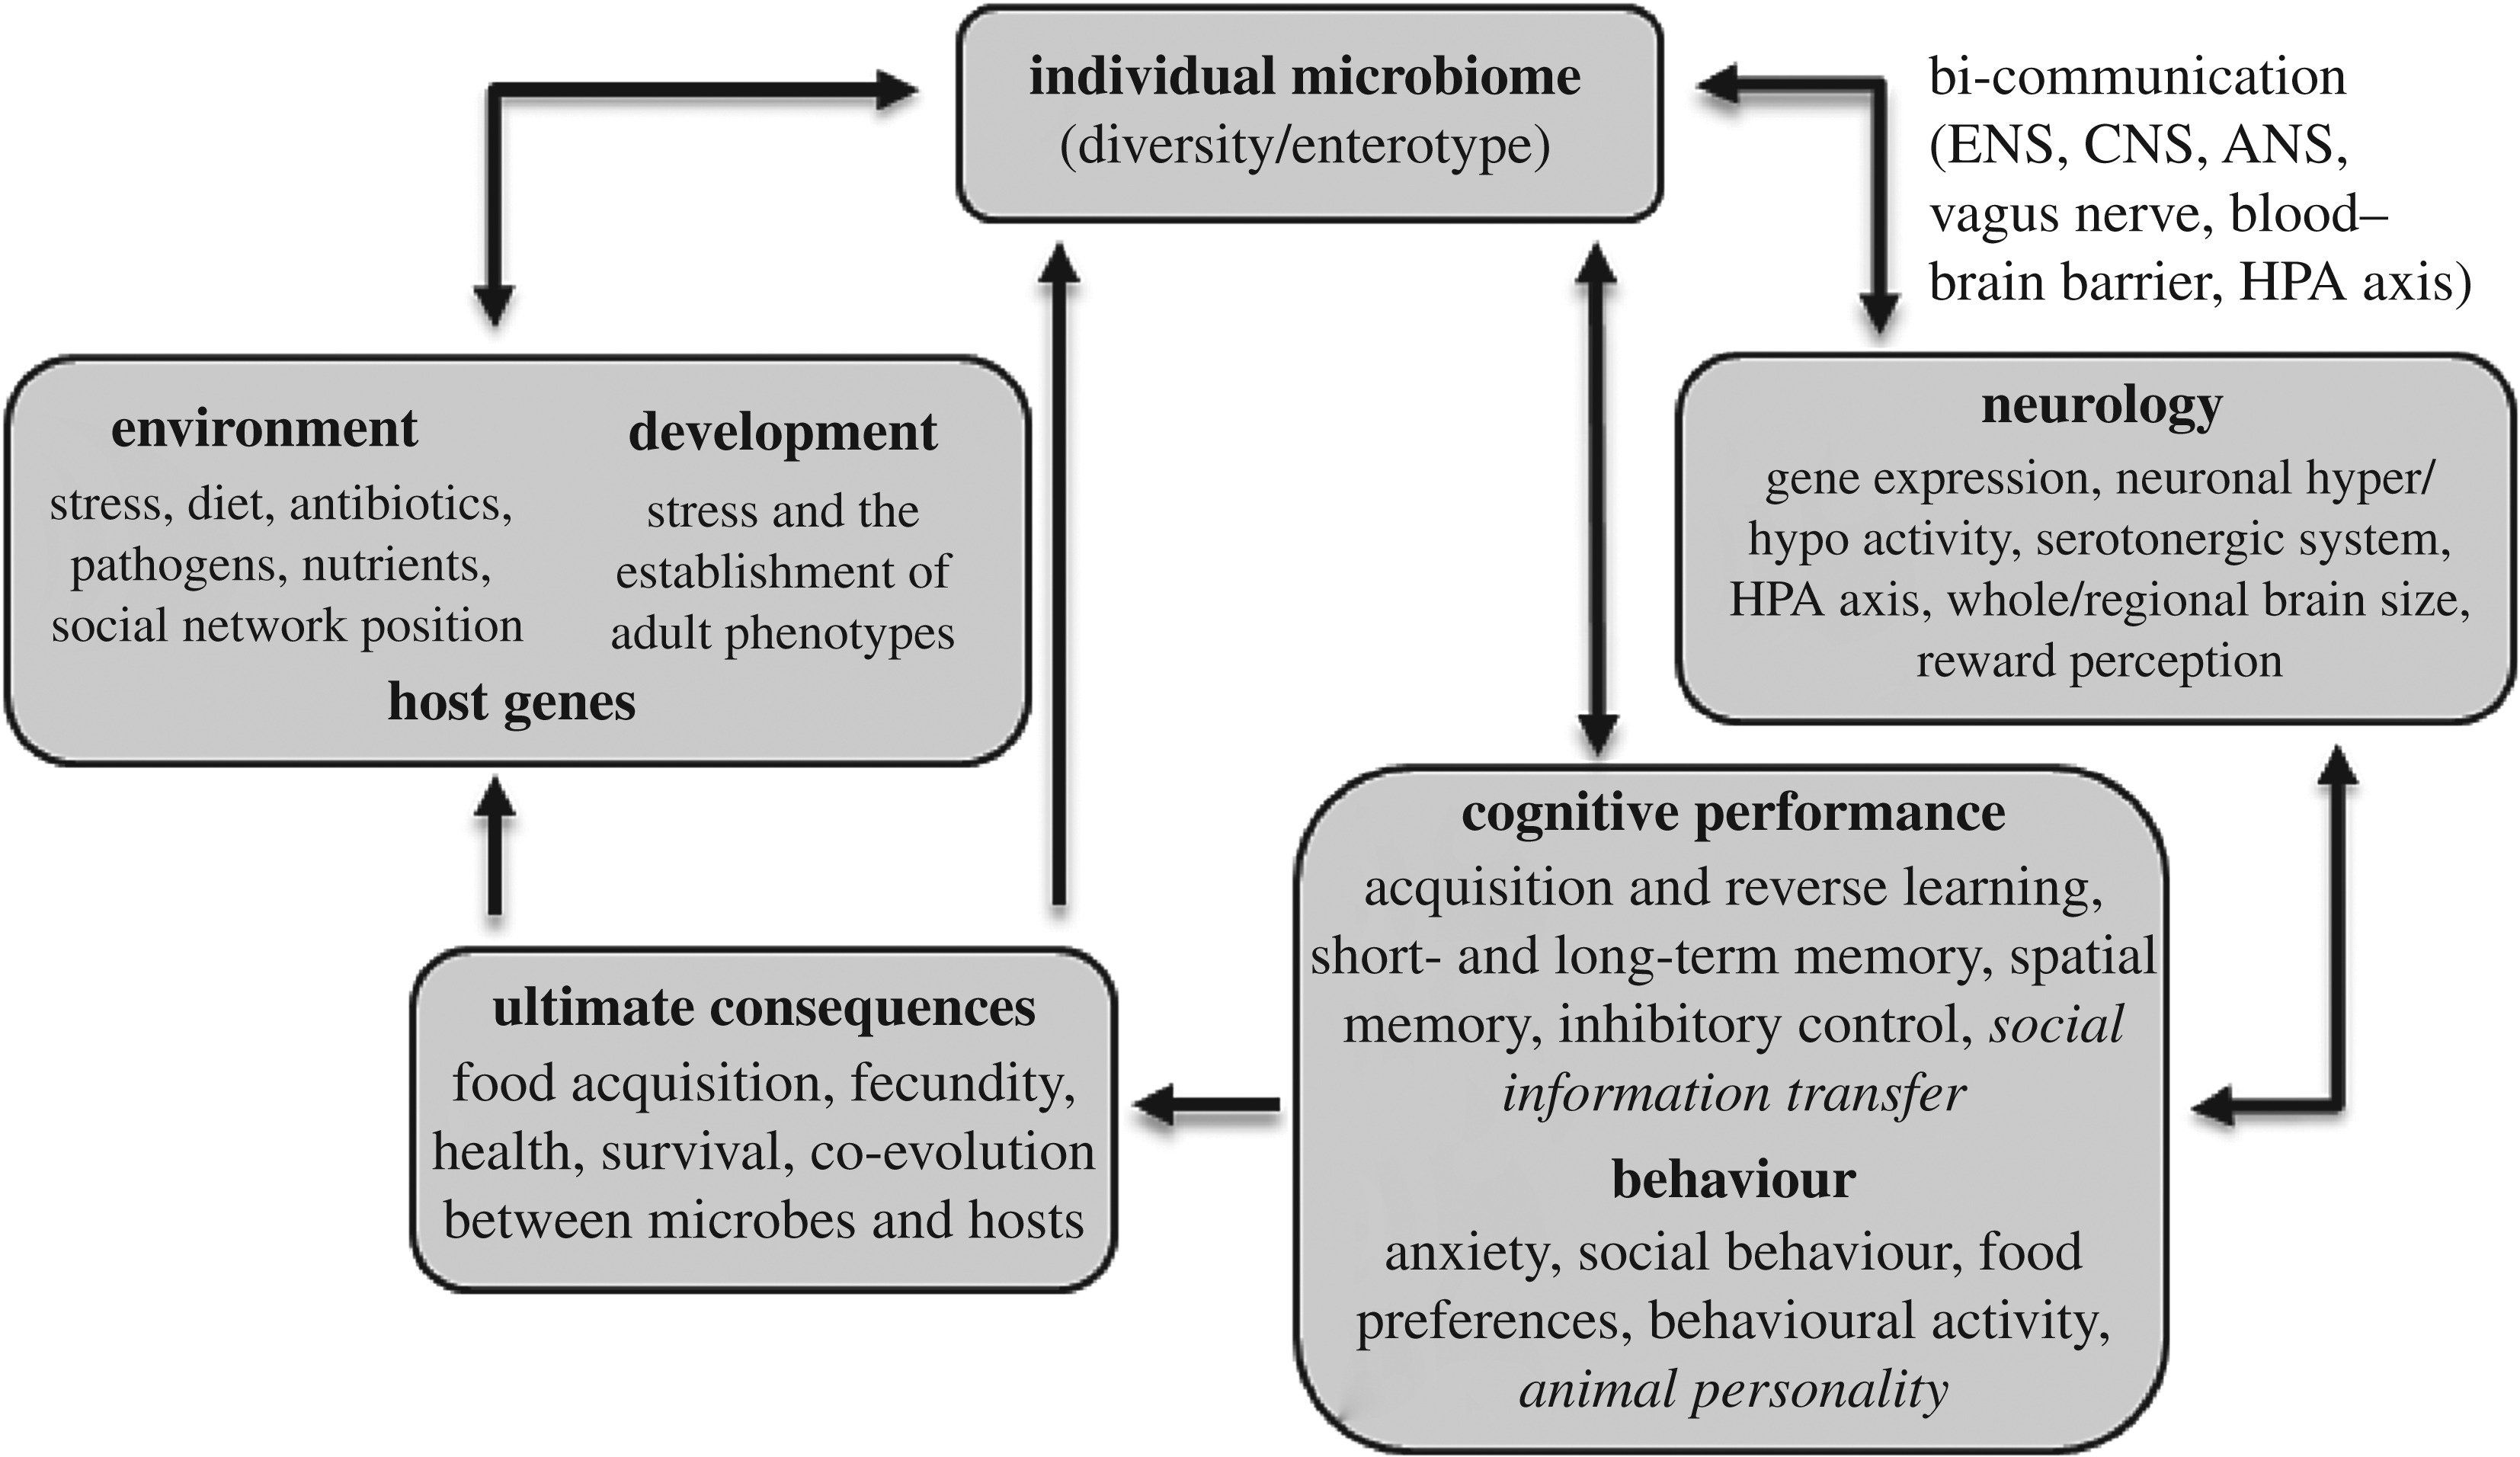 Genetic Convergence Between Cognition >> The Gut Microbiome As A Driver Of Individual Variation In Cognition